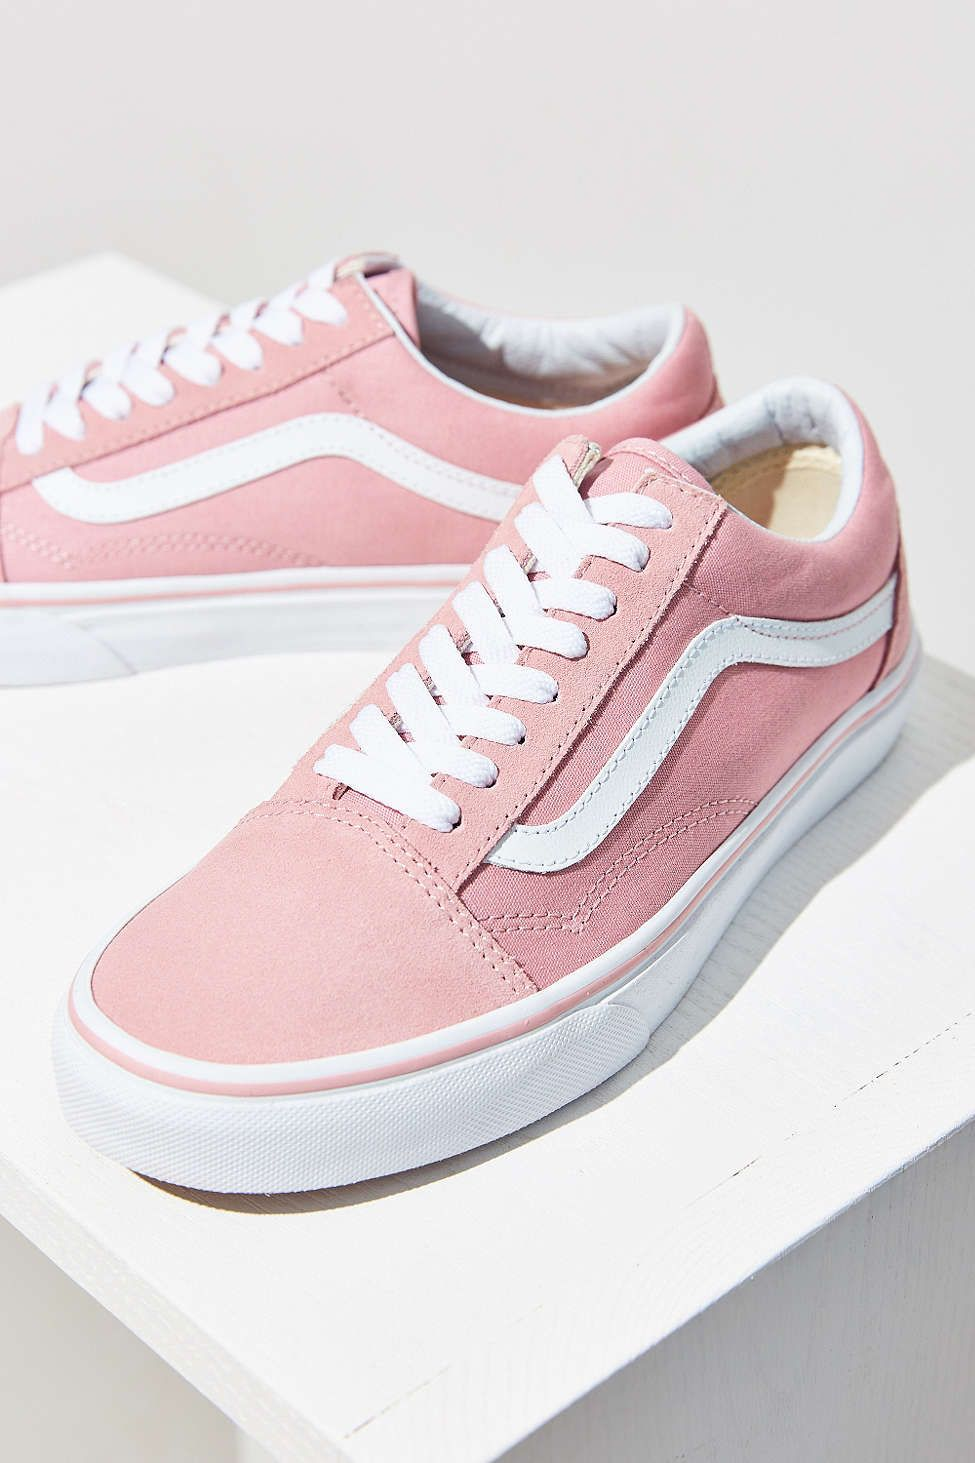 75017be540 Vans Pink Old Skool Sneaker.